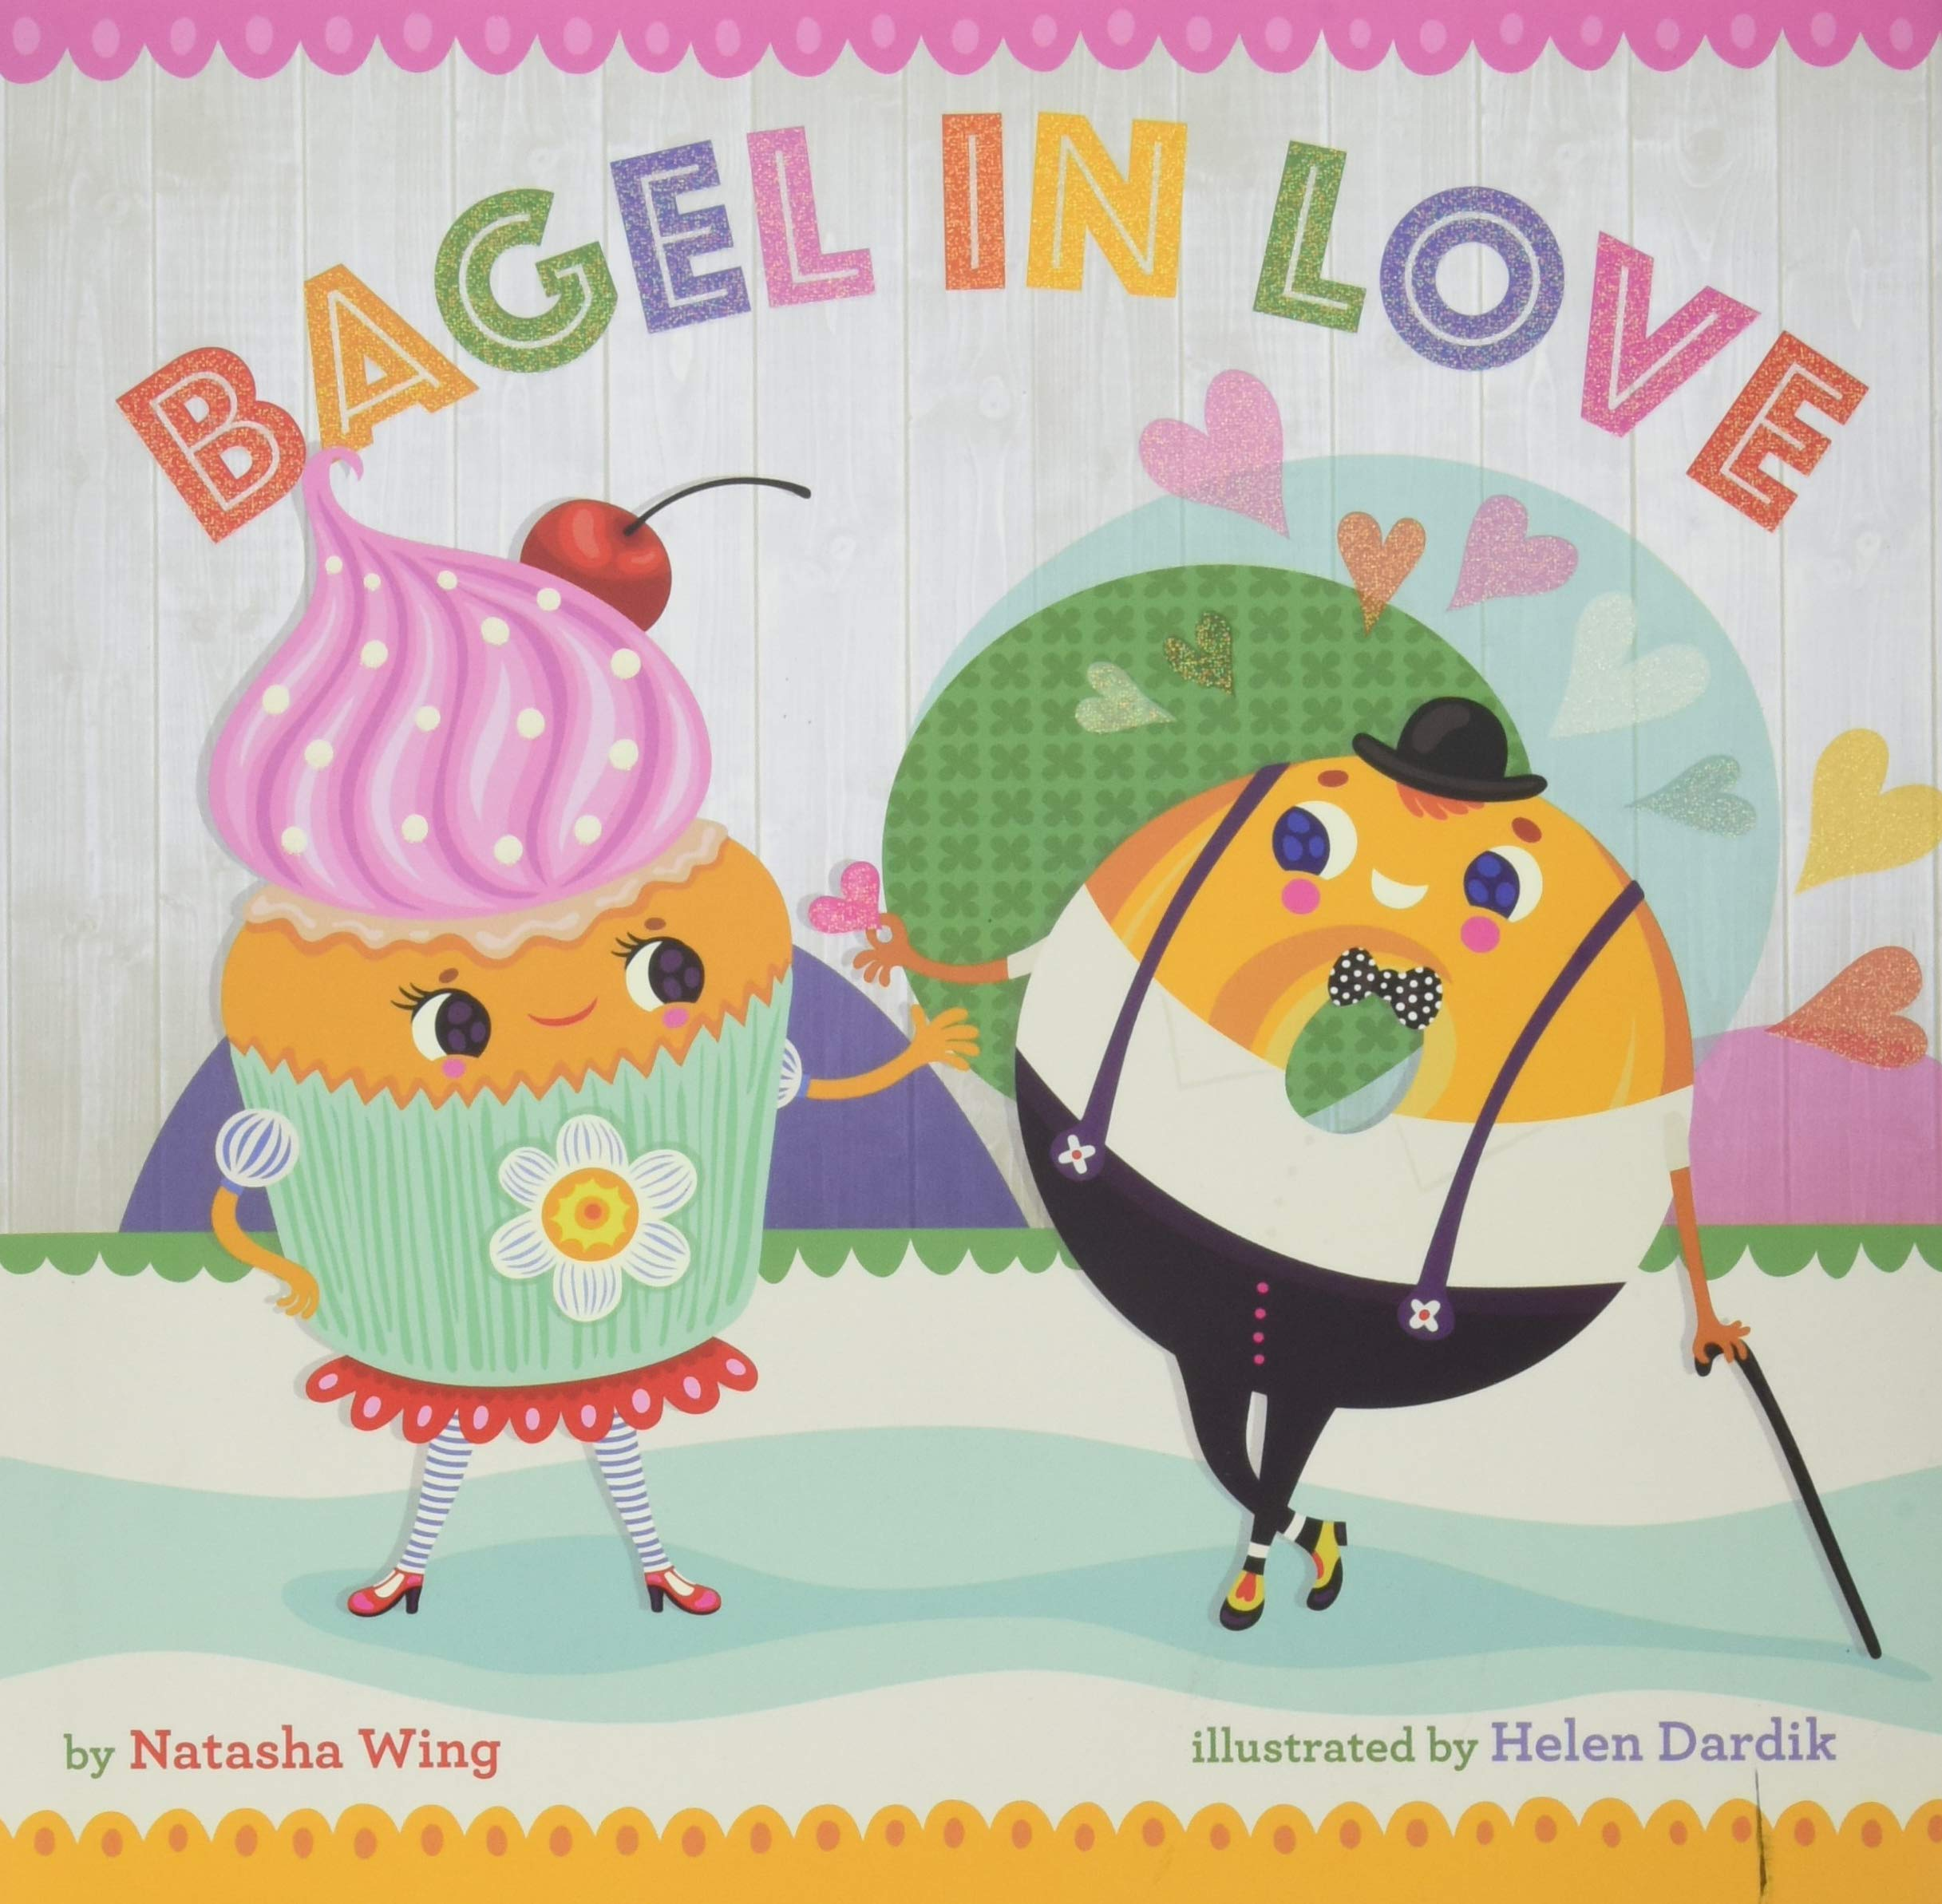 Bagel in Love, Valentine's Day Books for Kids